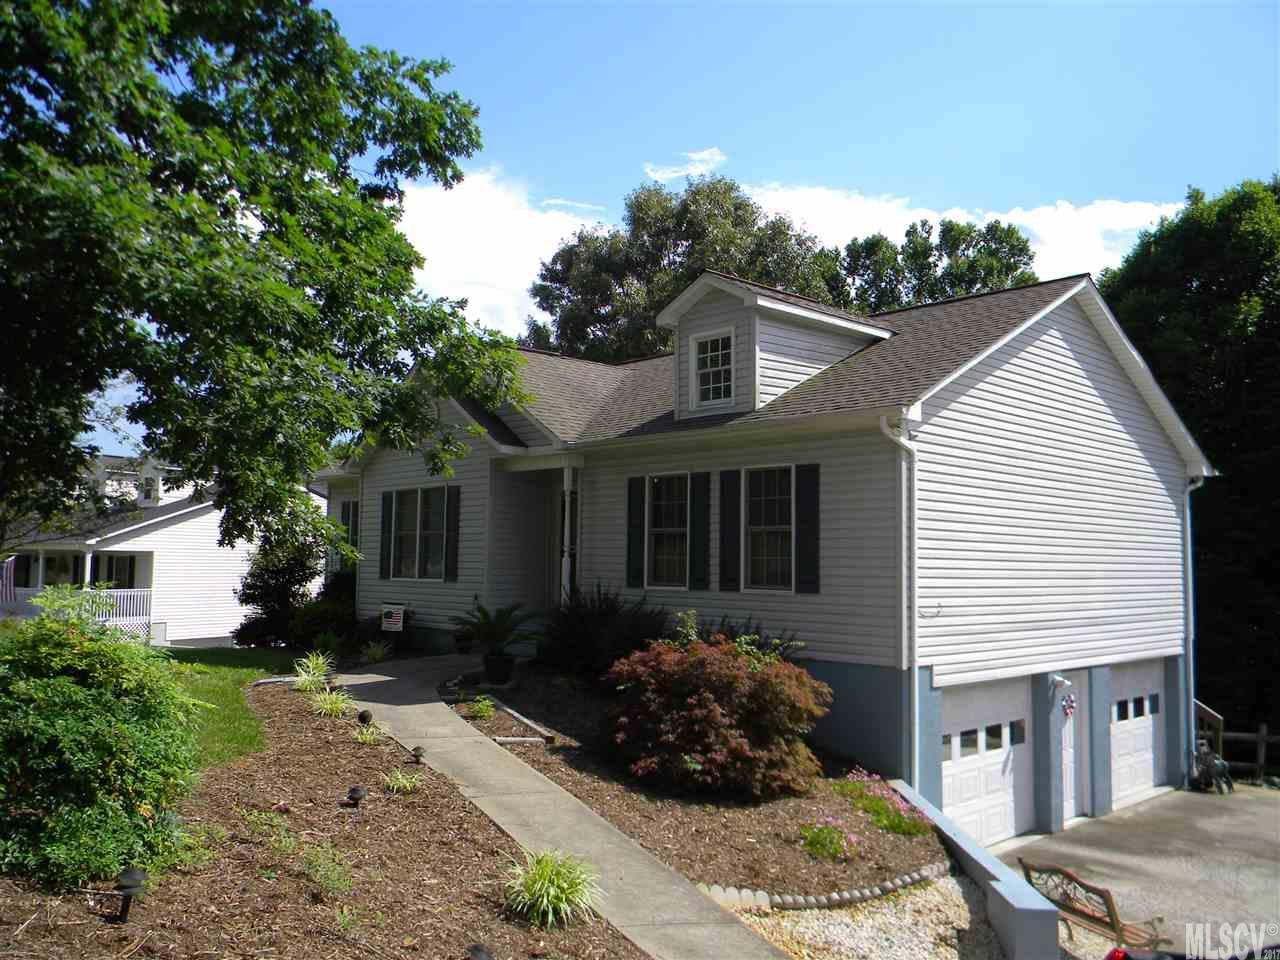 6519 beechtree ct hickory nc mls 9594330 century 21 for Home builders in hickory nc